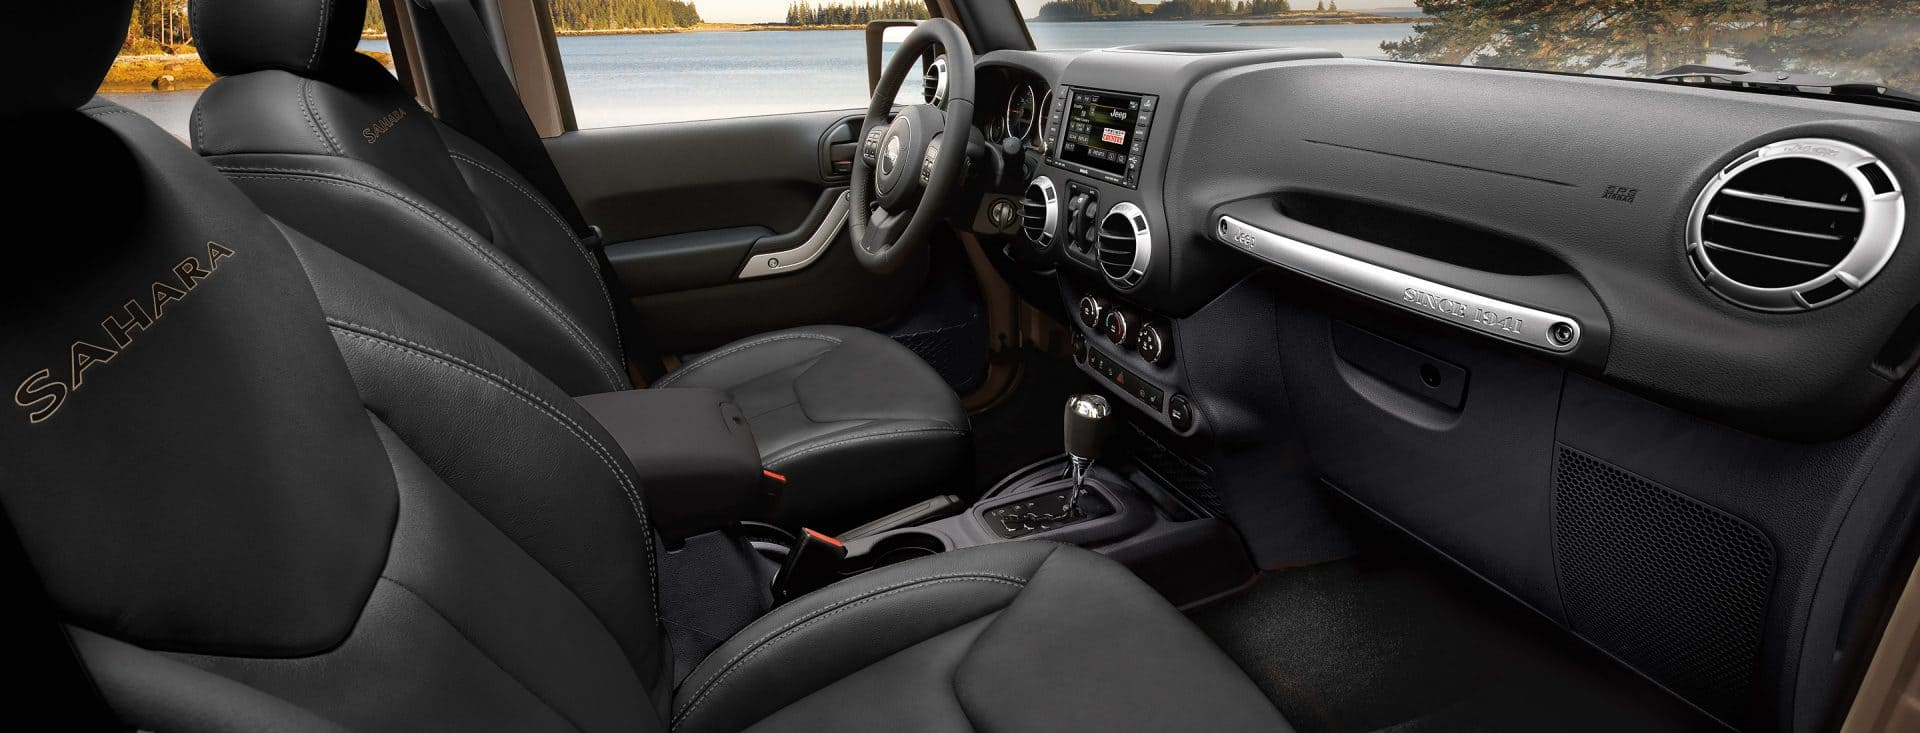 2018 Jeep Wrangler JK Interior